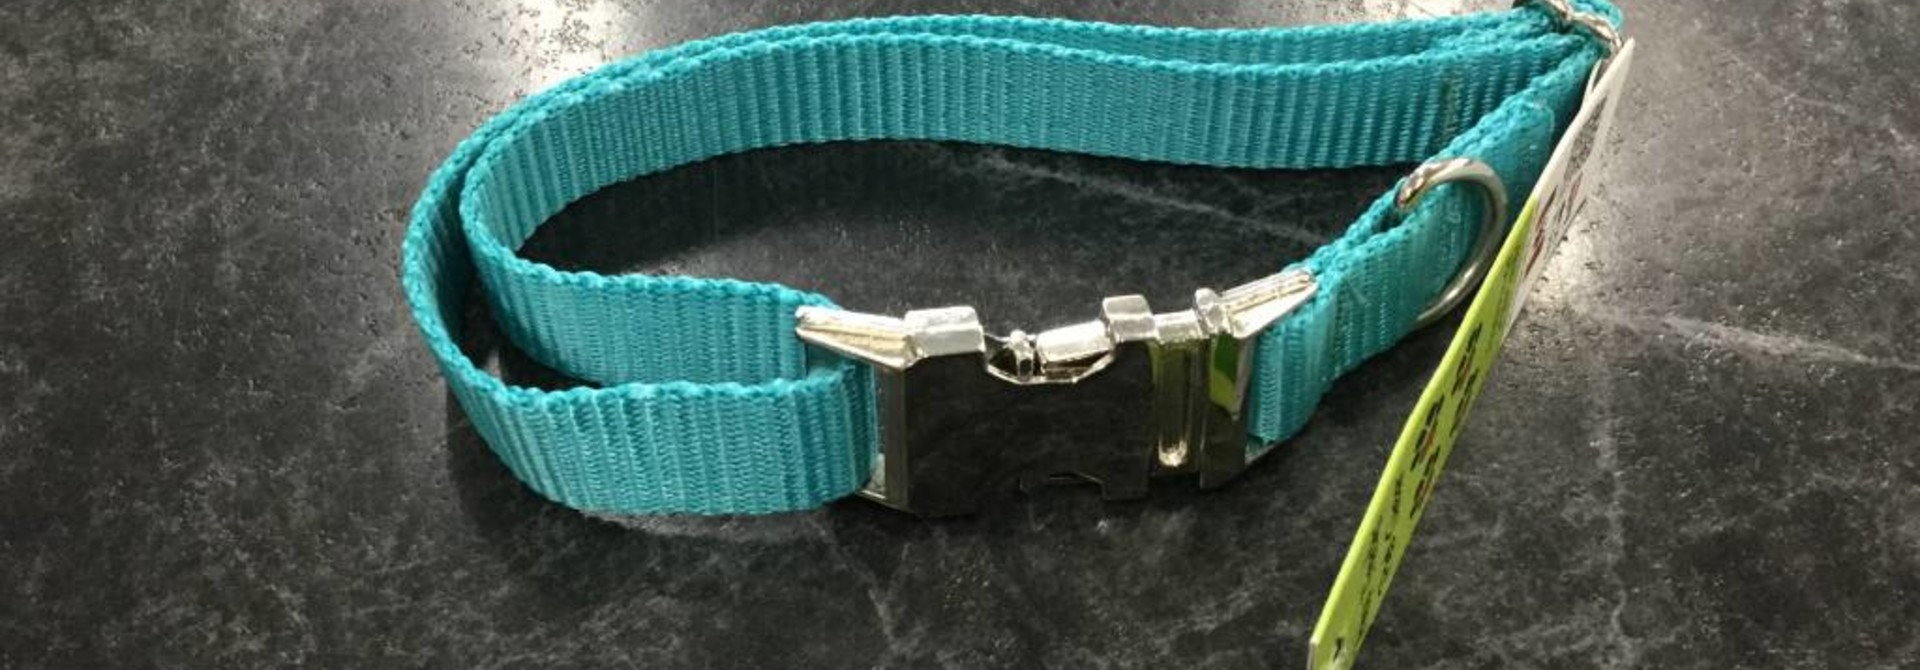 """3/4"""" Adjustable Dog Collar with Mighty Metal Buckle  Teal 14-20"""""""